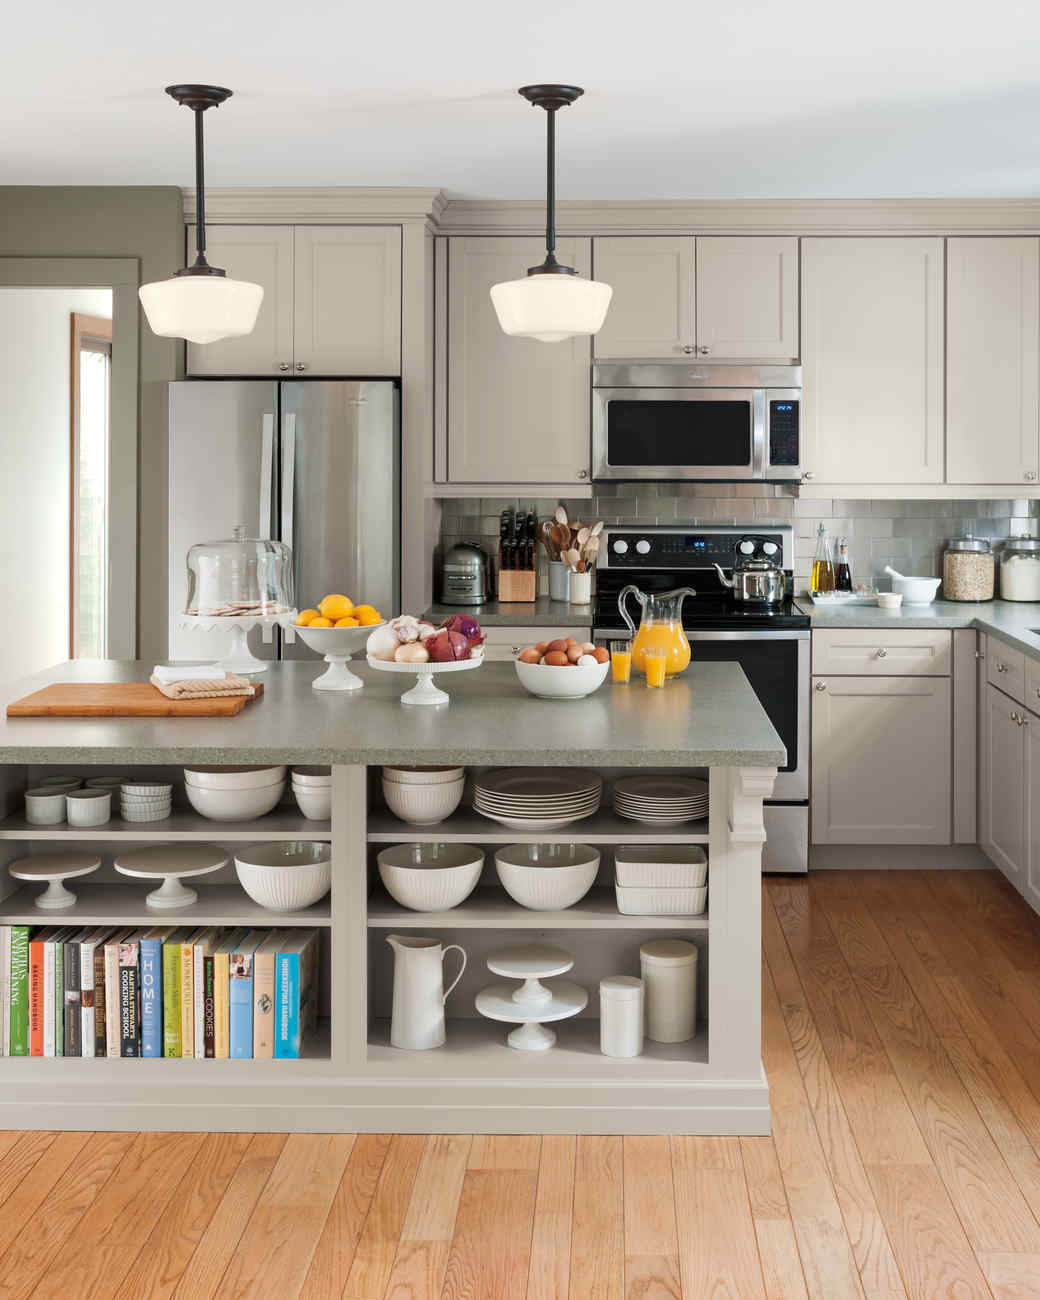 & Select Your Kitchen Style | Martha Stewart